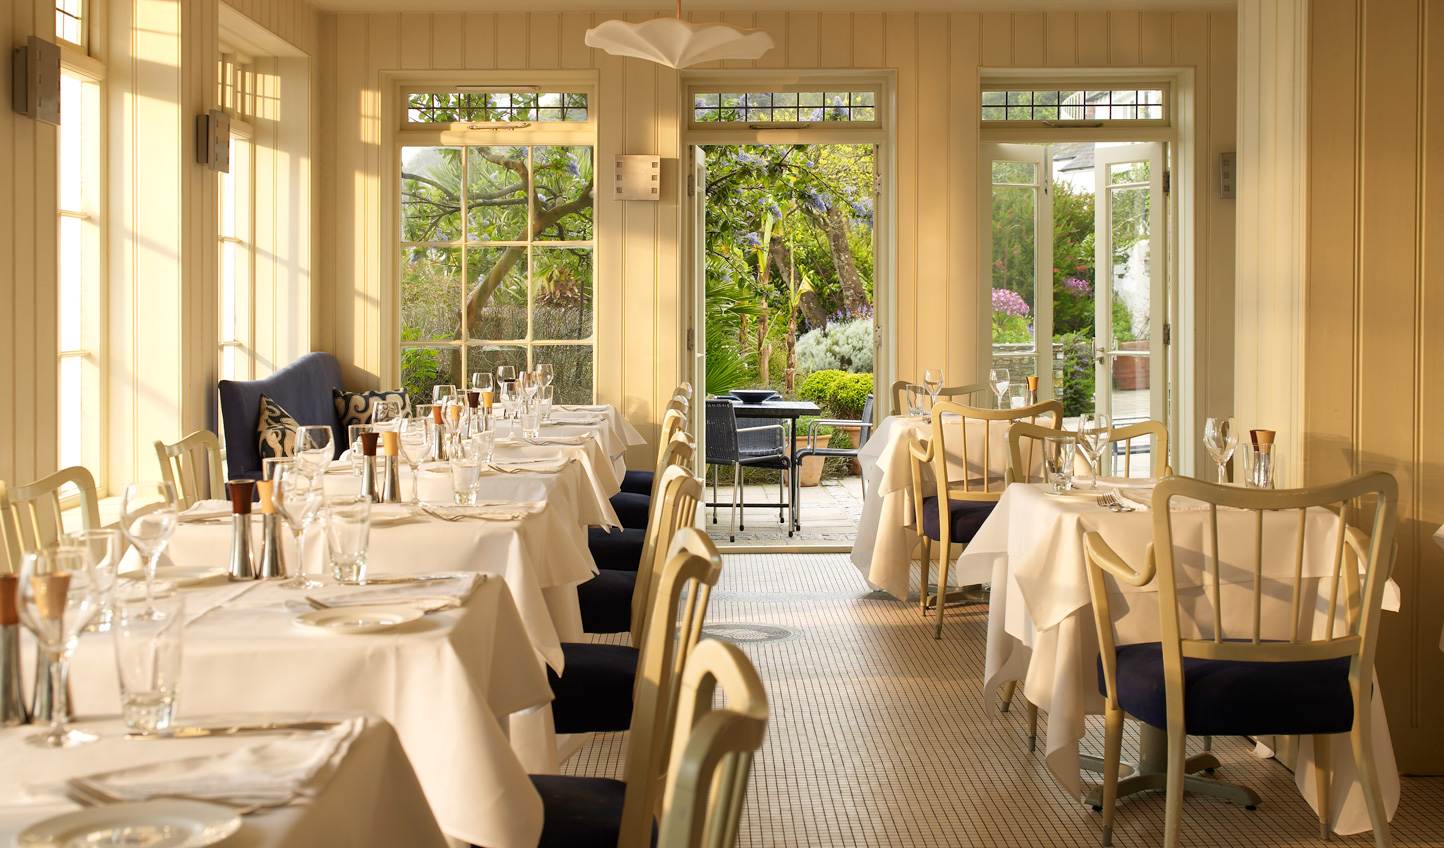 Dine on fresh product in the beautiful restaurant